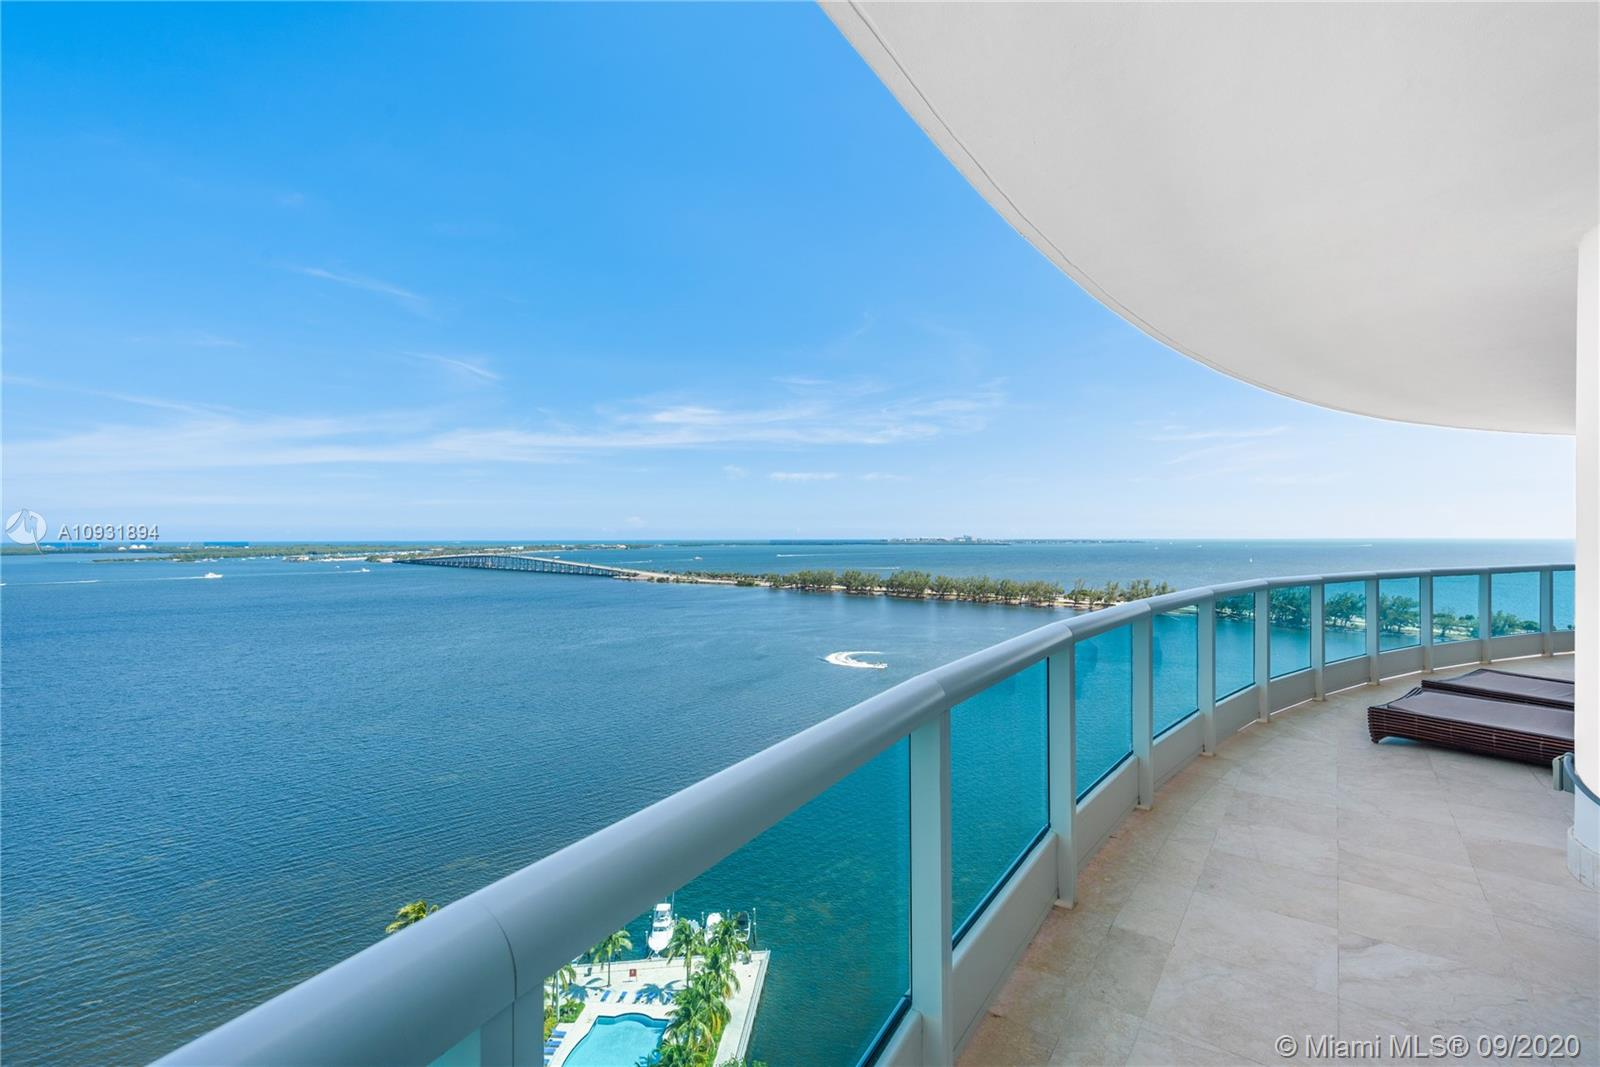 2127 Brickell Ave, Unit #2401 & 02 Luxury Real Estate